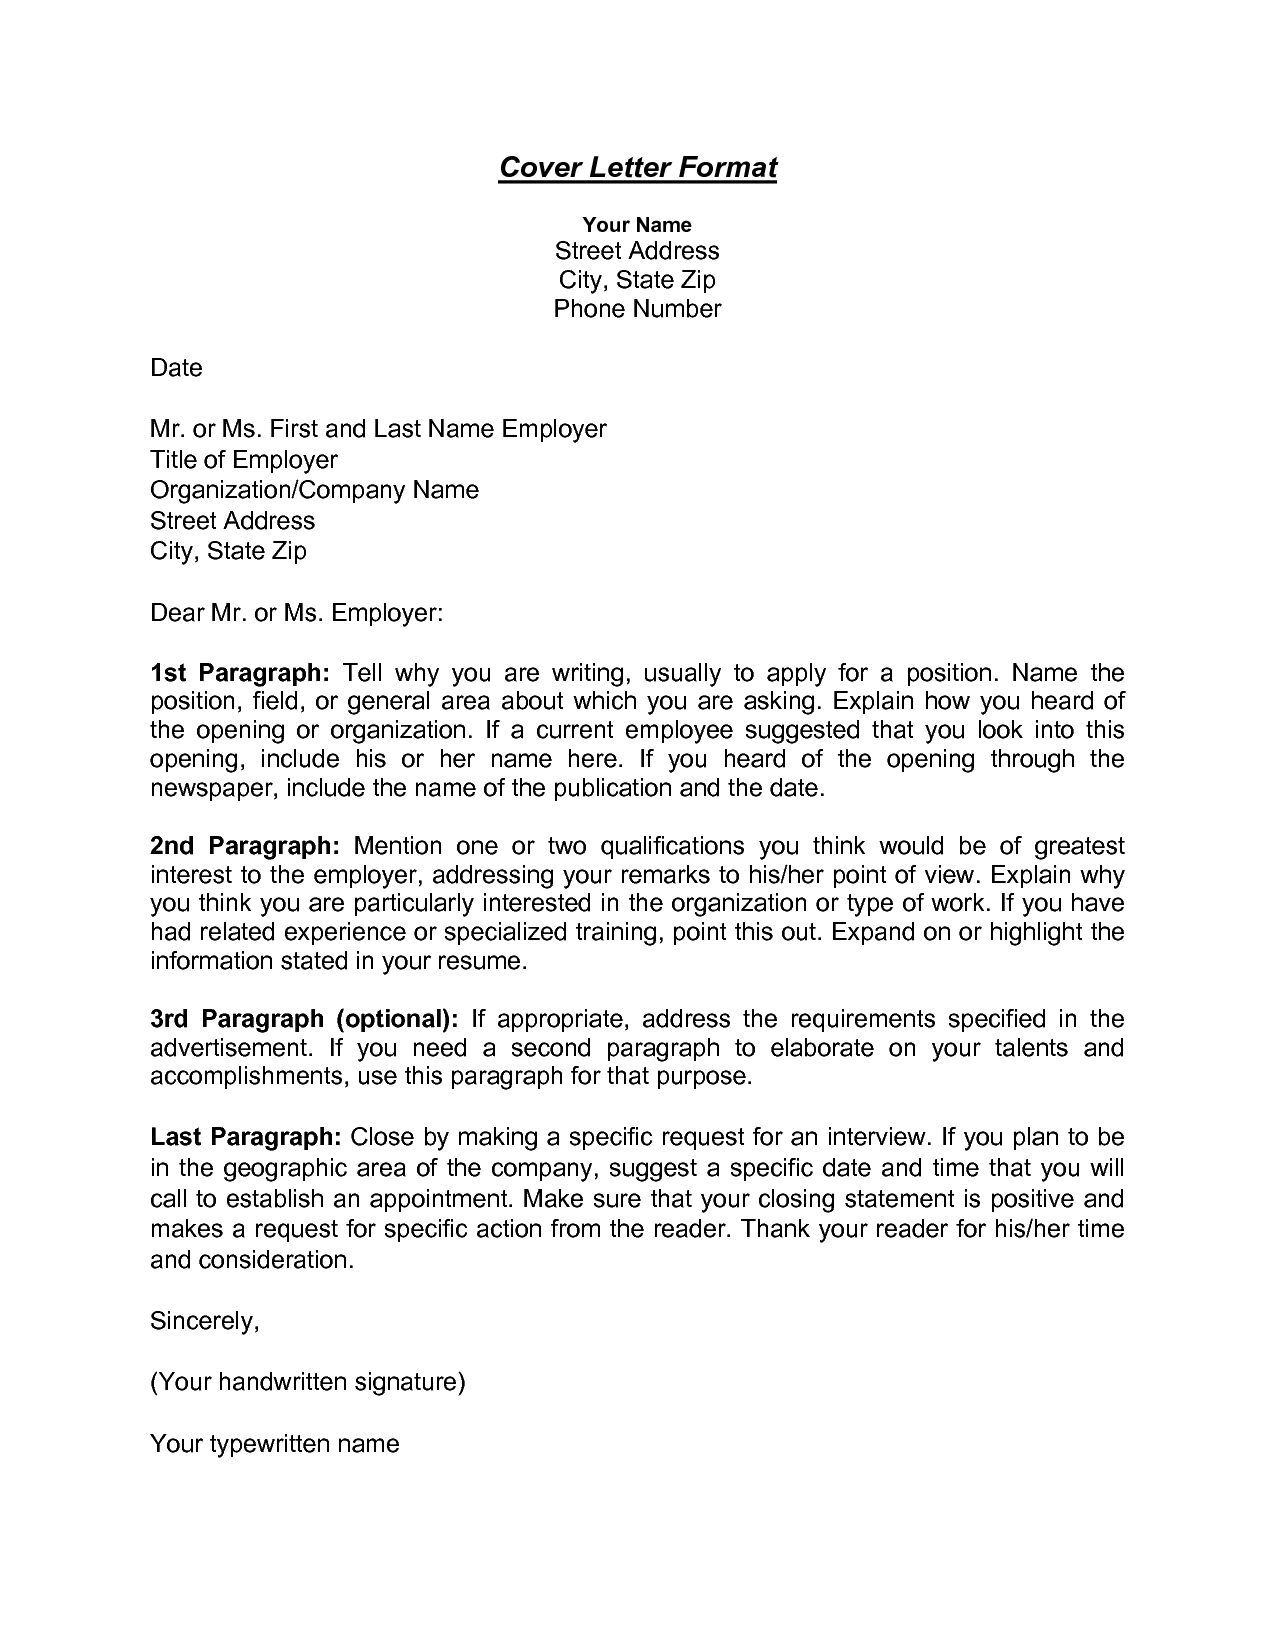 Cover Letter Template Address Address Cover Coverlettertemplate Letter Template Https Cover Letter Format Cover Letter For Resume Writing A Cover Letter